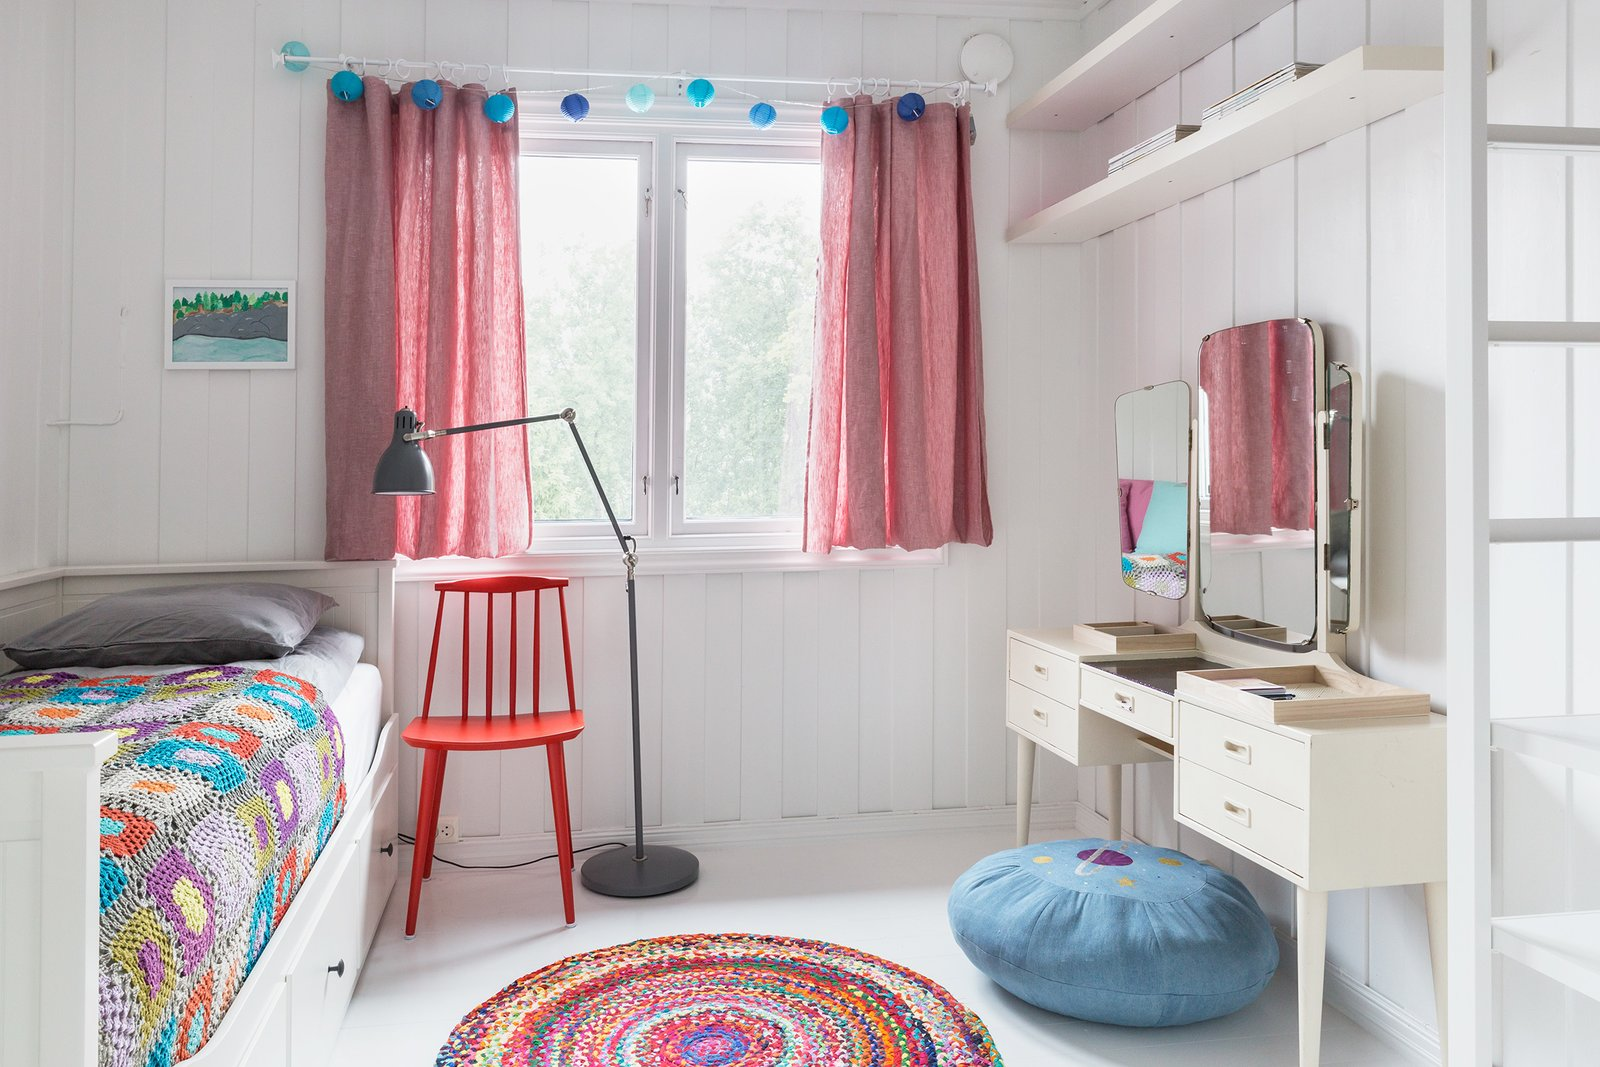 """Kids Room, Bed, Chair, Pre-Teen Age, Dresser, Shelves, Lamps, and Bedroom Room Type Colorful bed spreads and rugs make this a cool bedroom for kids.  Photo 11 of 13 in Relax and Recharge at This Charming Norwegian """"Hytte"""" Rental"""